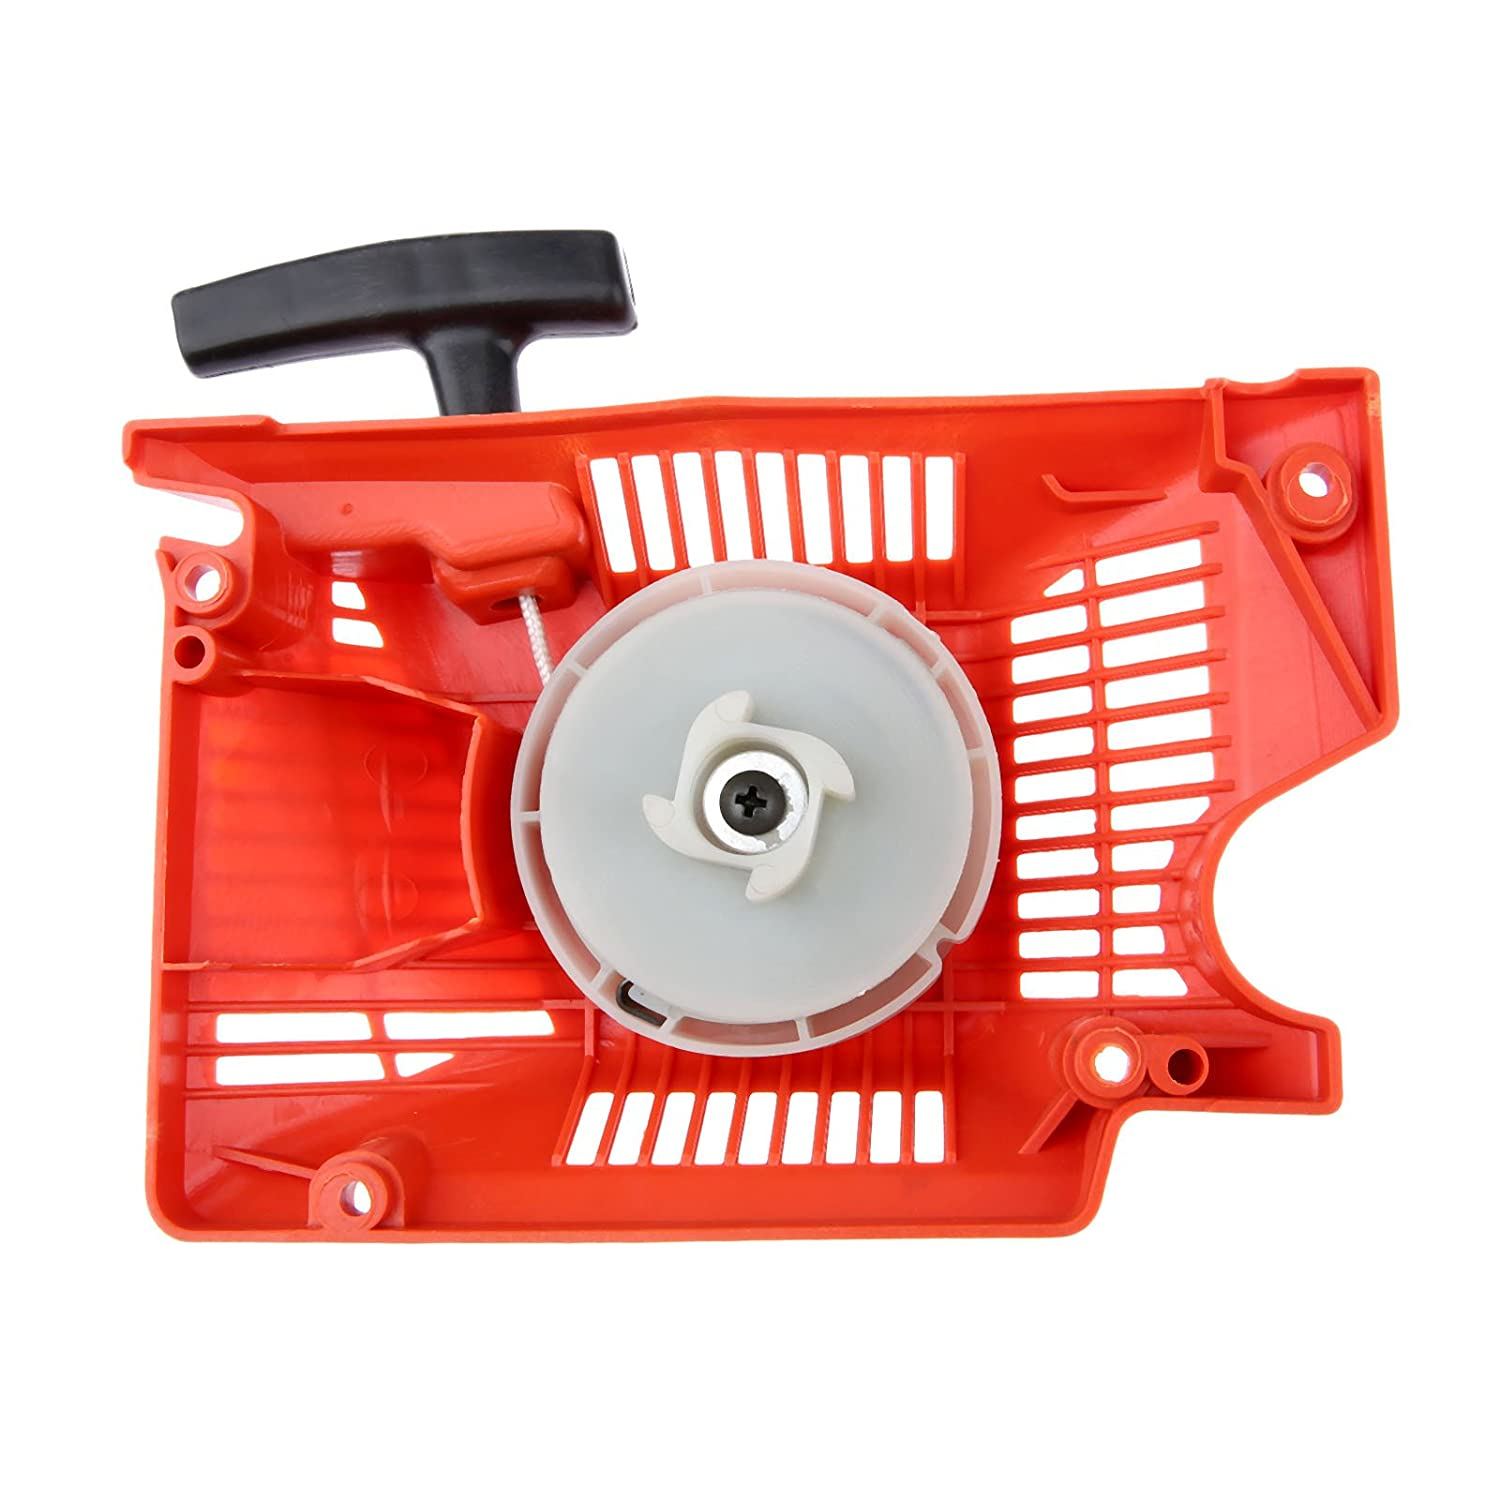 45cc 52cc 58cc Chainsaw Parts Single Recoil Pull Starter Assembly Chainsaw Spares for Chinese chainsaw 4500/5200/5800 Hicello